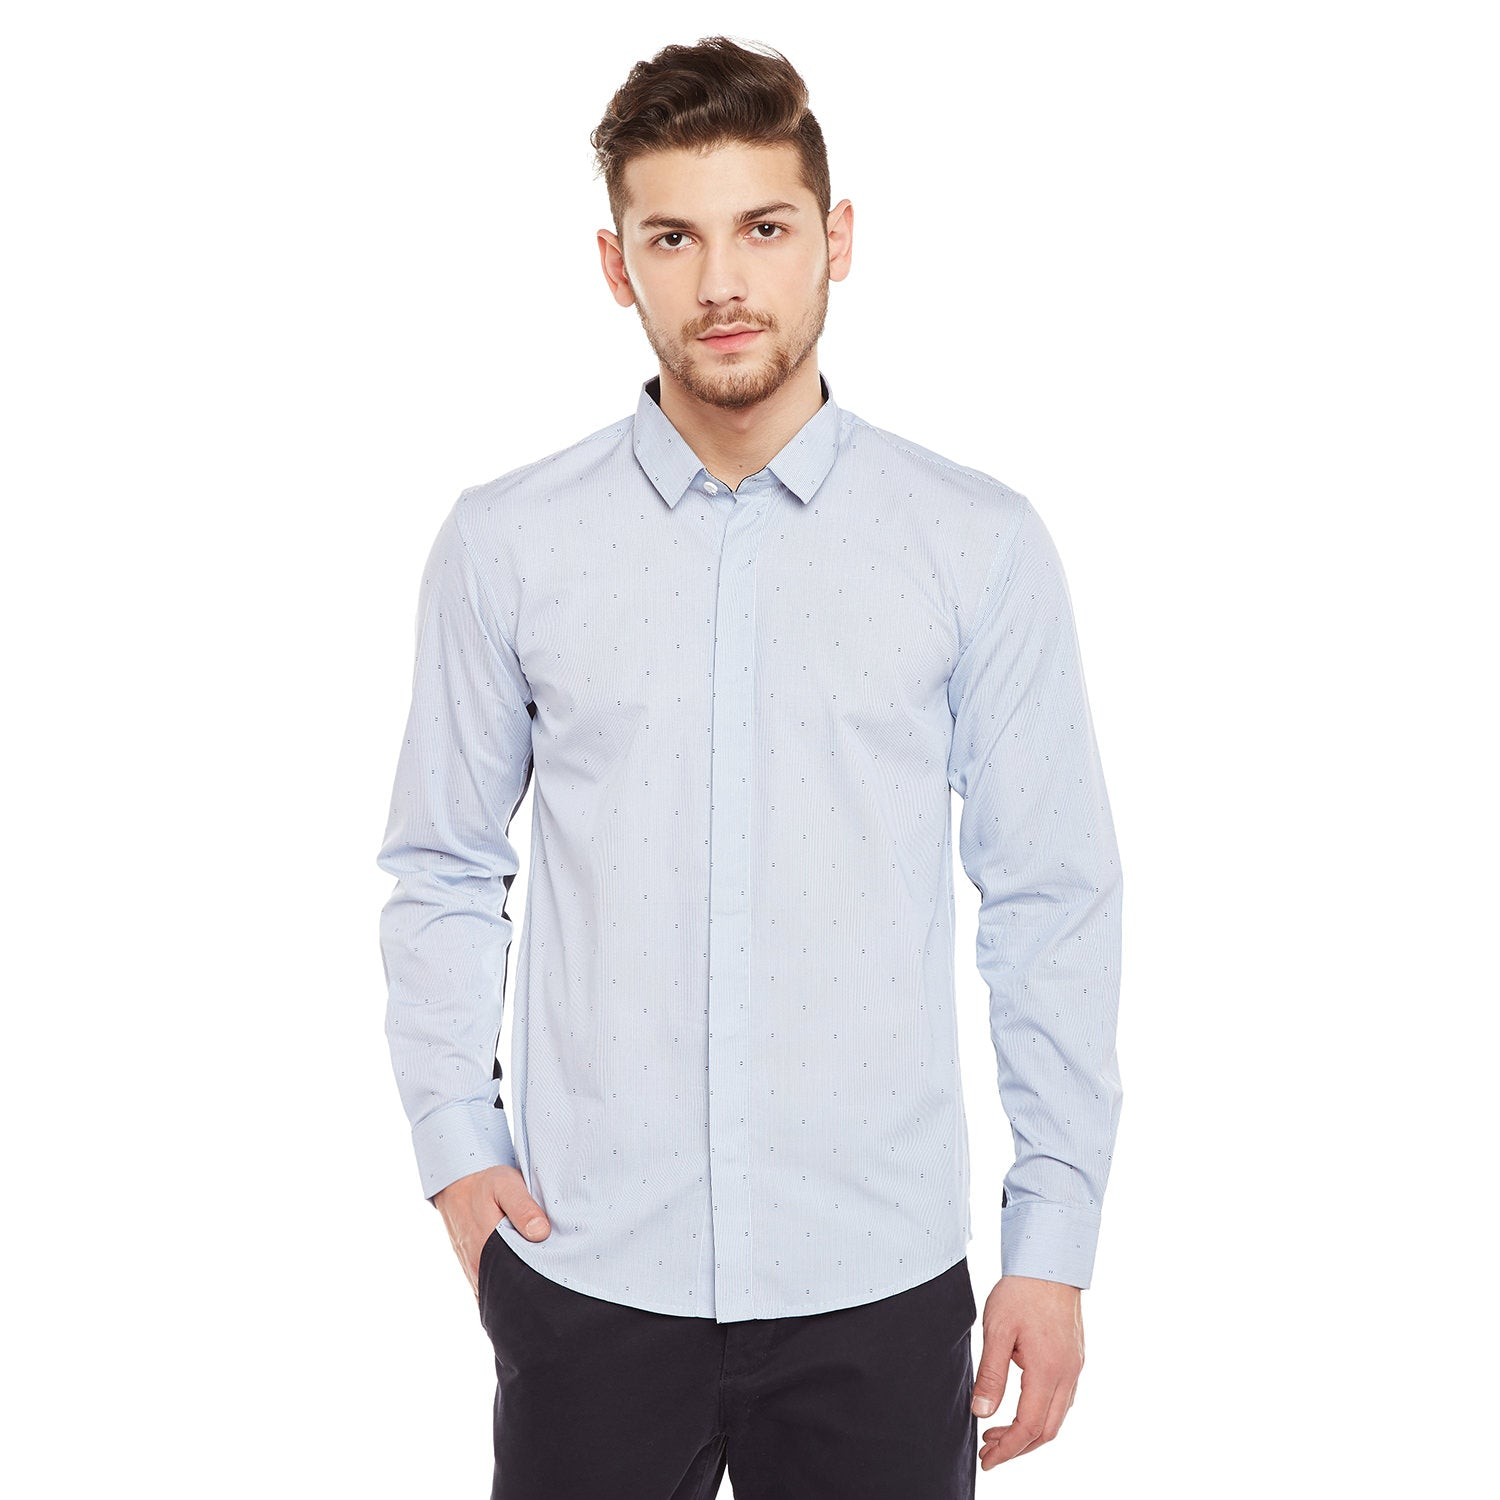 Atorse Mens Full Sleeves Shirt With Engineered Print Details